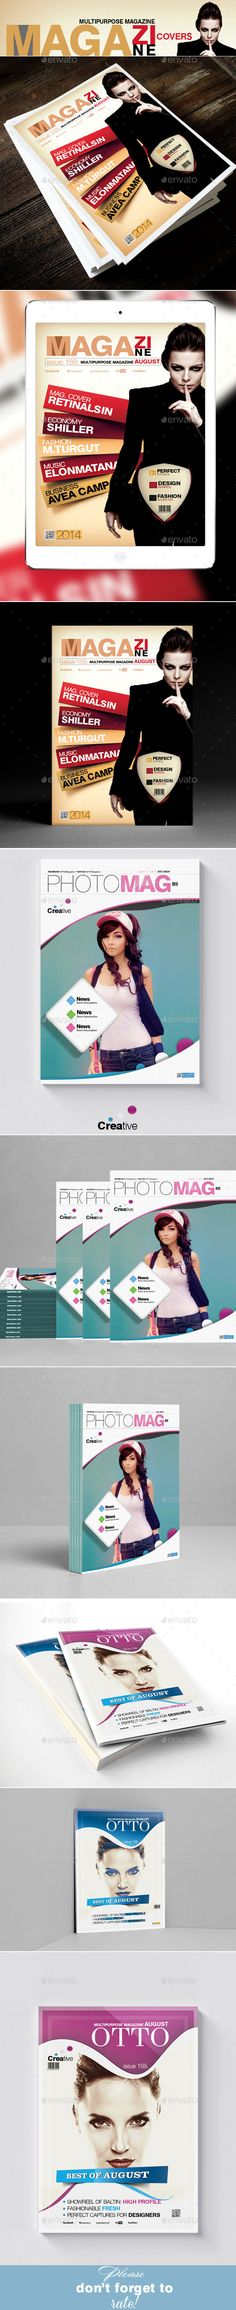 Multipurpose Magazine Cover Templates Bundle 3in1 - #Magazines Print Templates Download here:   https://graphicriver.net/item/multipurpose-magazine-cover-templates-bundle-3in1/11215638?ref=alena994